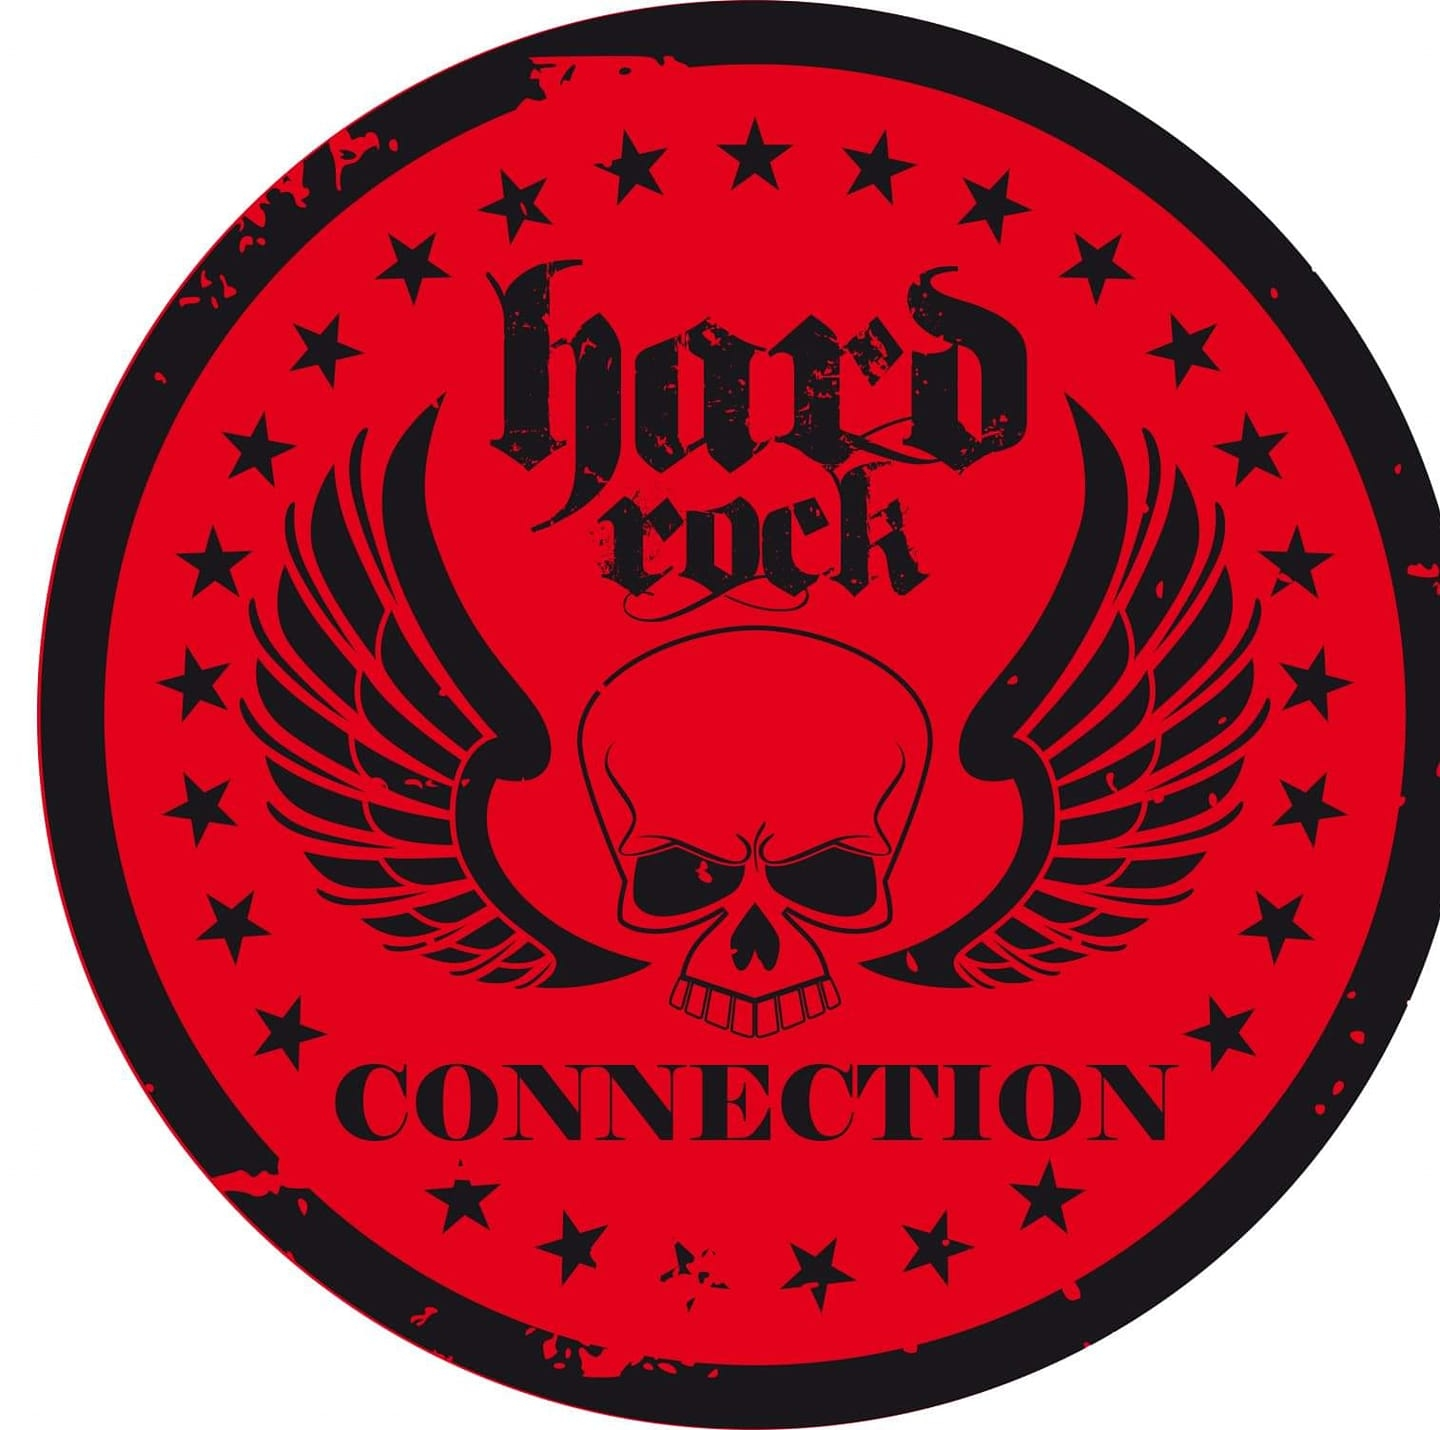 hard-rock-connection-hrc-radio-metal